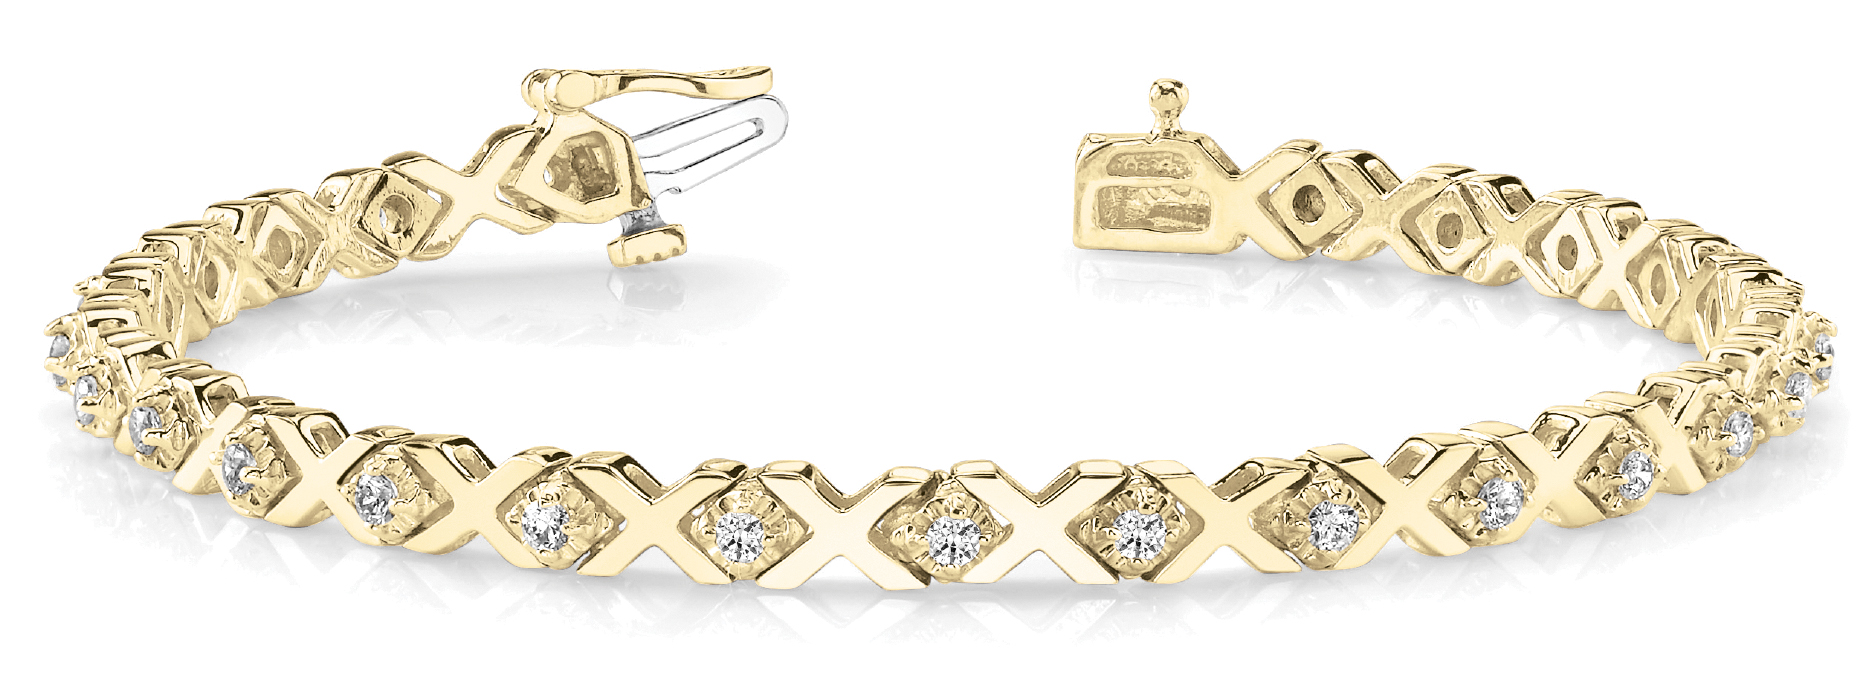 XO Diamond Bracelet Yellow Gold 0.91 Carat